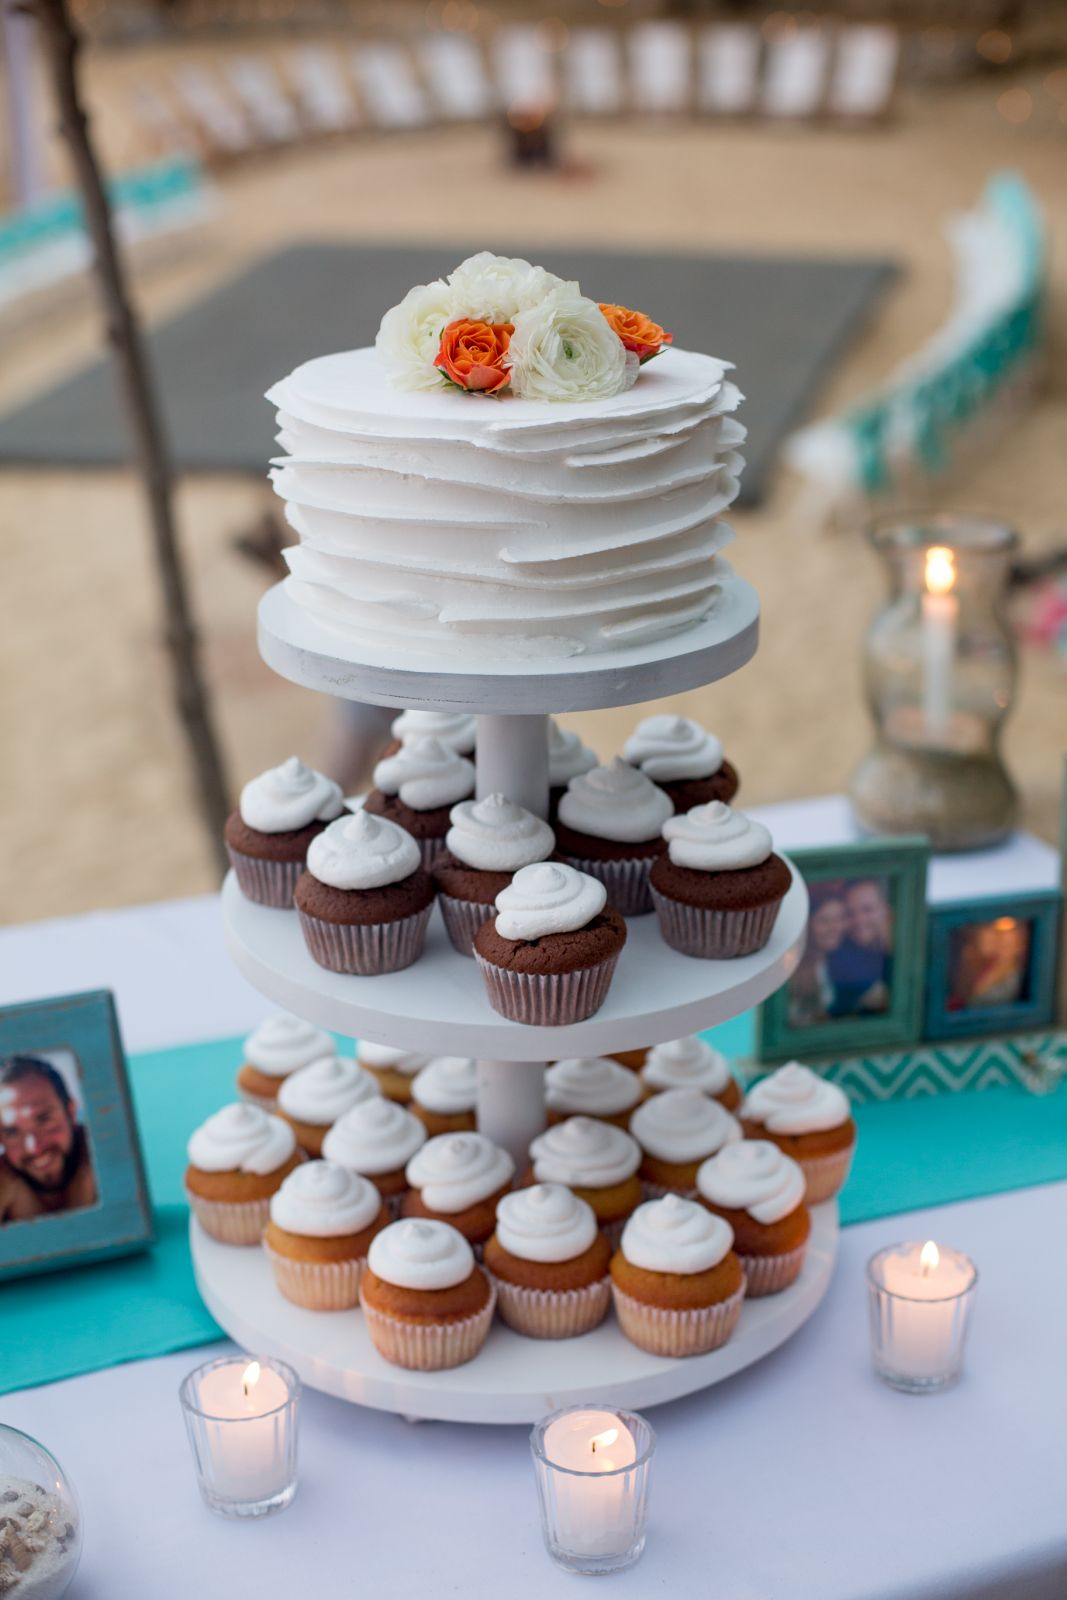 A silbolic wedding cake on the top and cupckes for erevyone